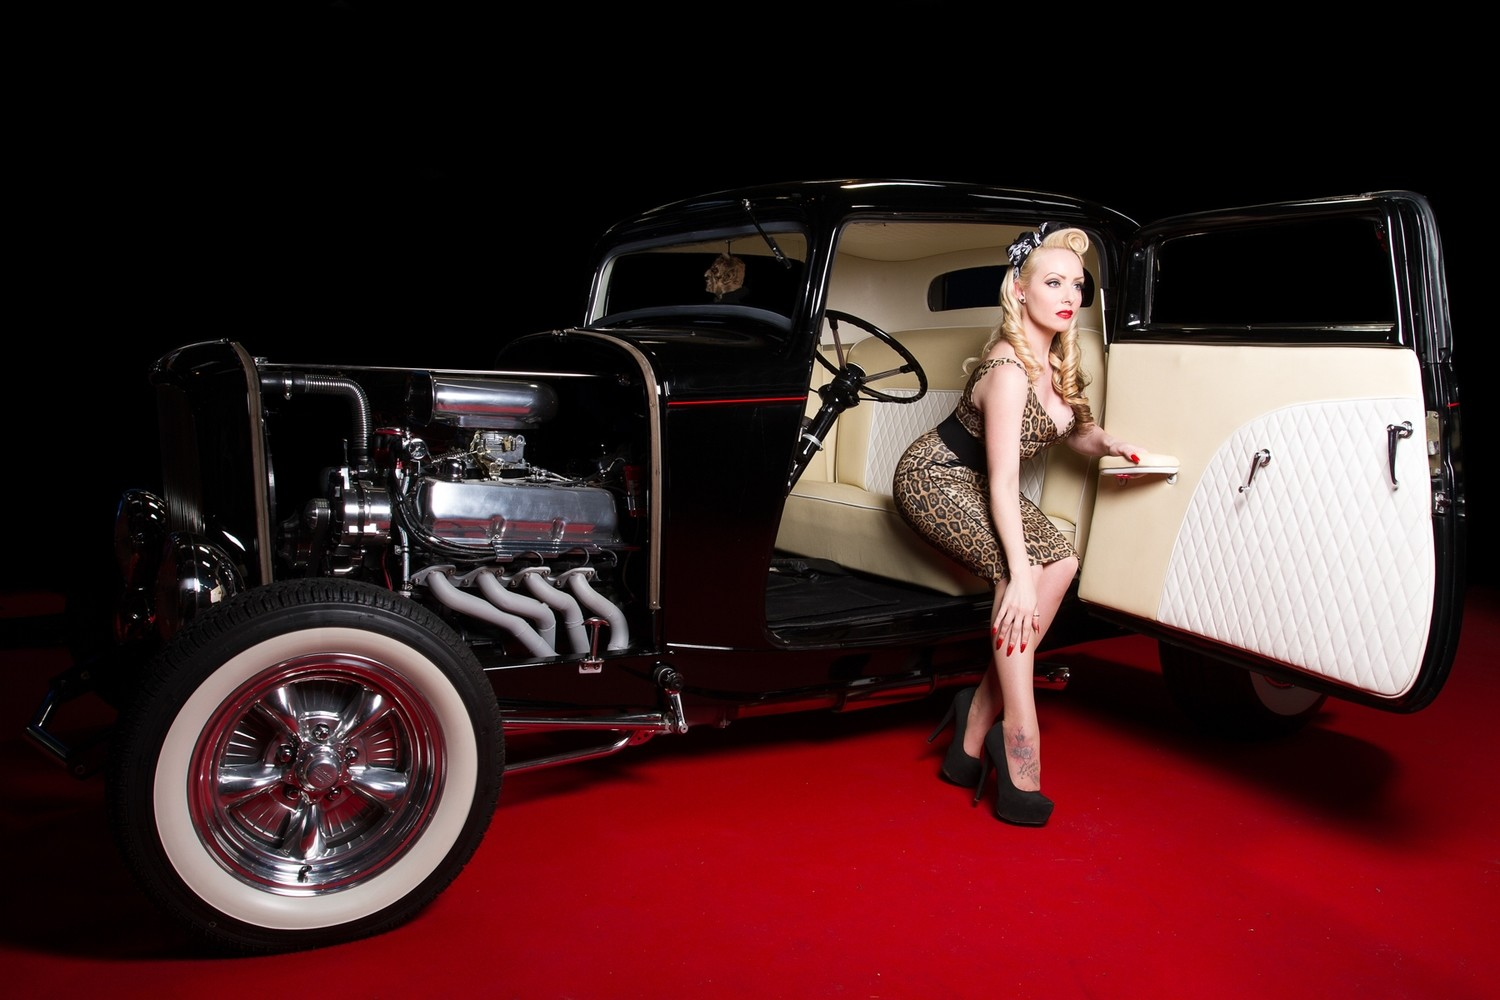 October DiVine Peterborough Hot Rod